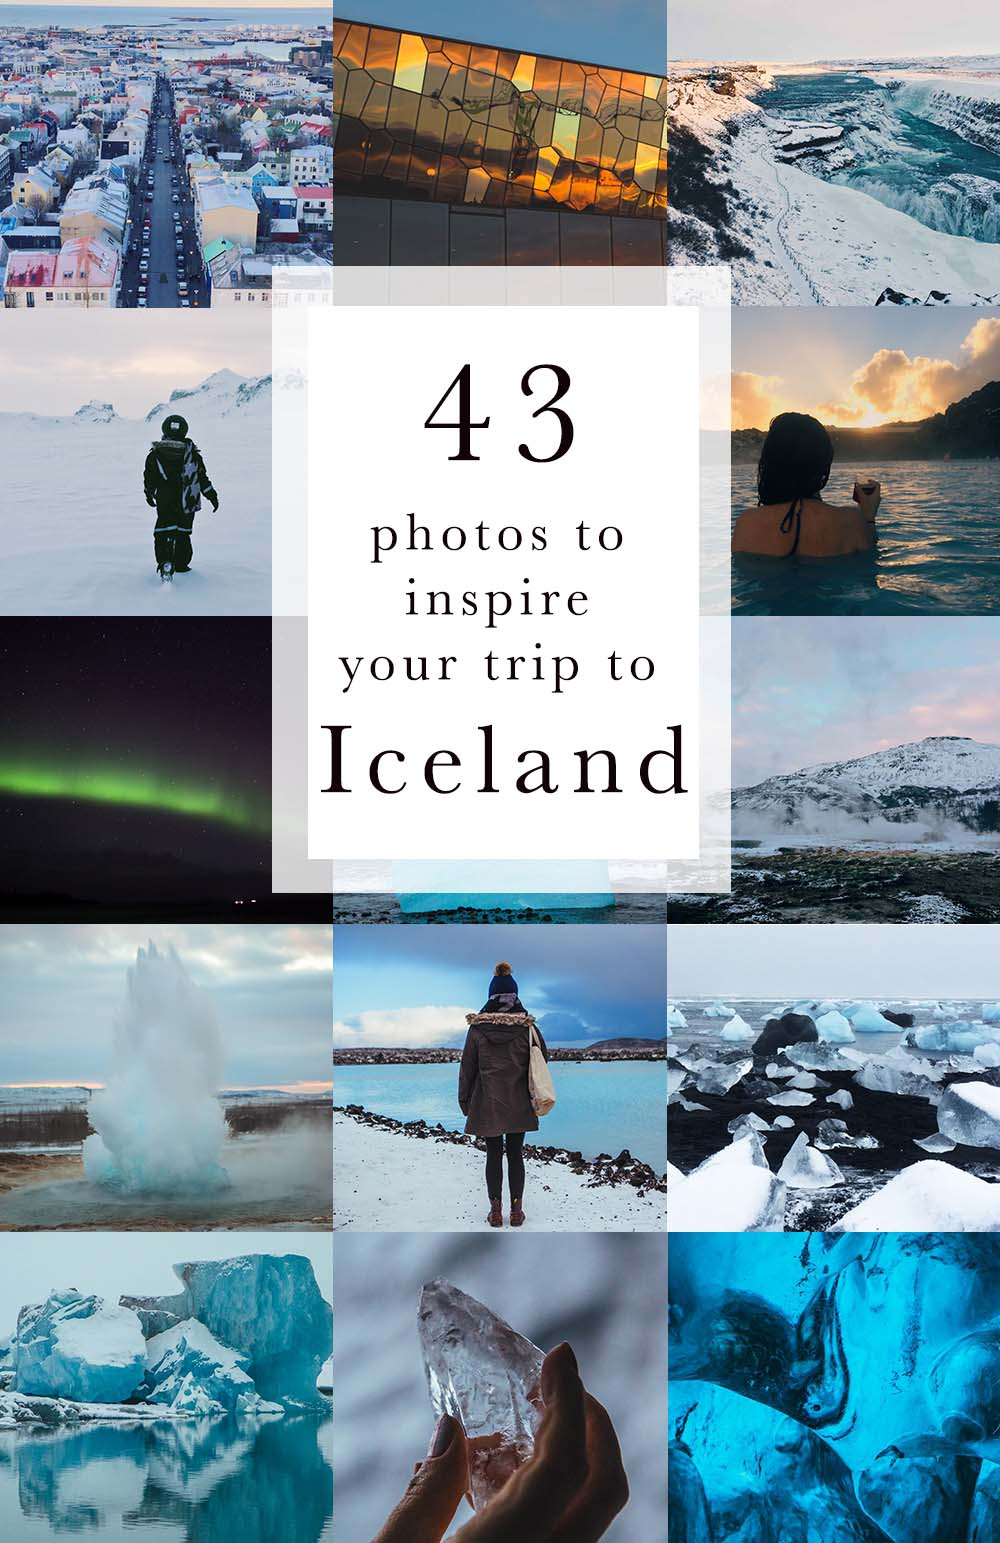 43 photos to inspire your trip to Iceland